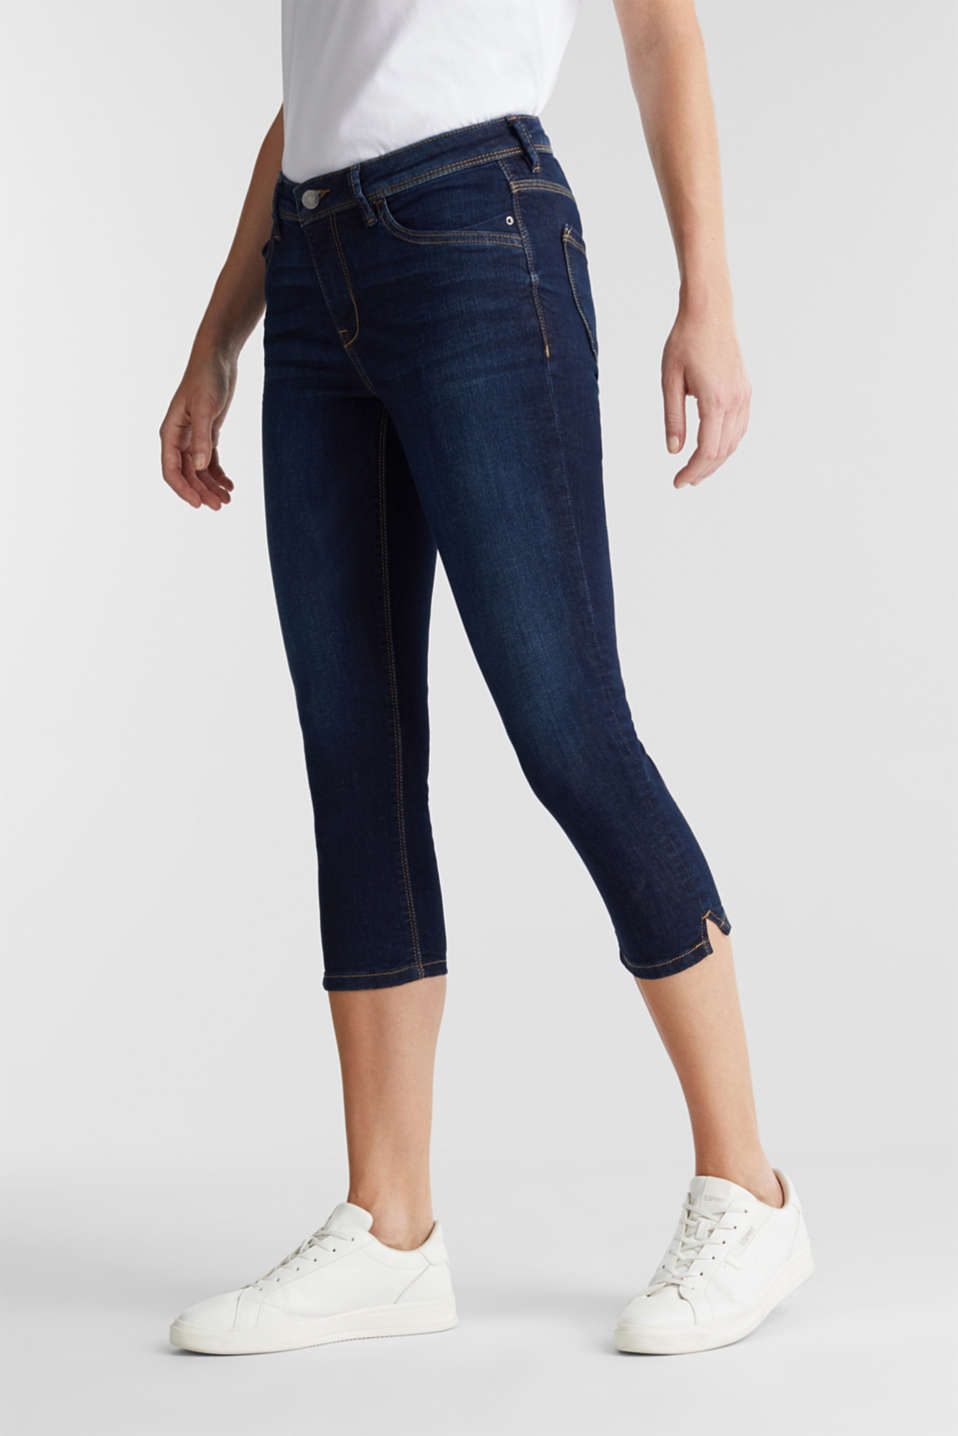 Esprit - Capri jeans with whiskering